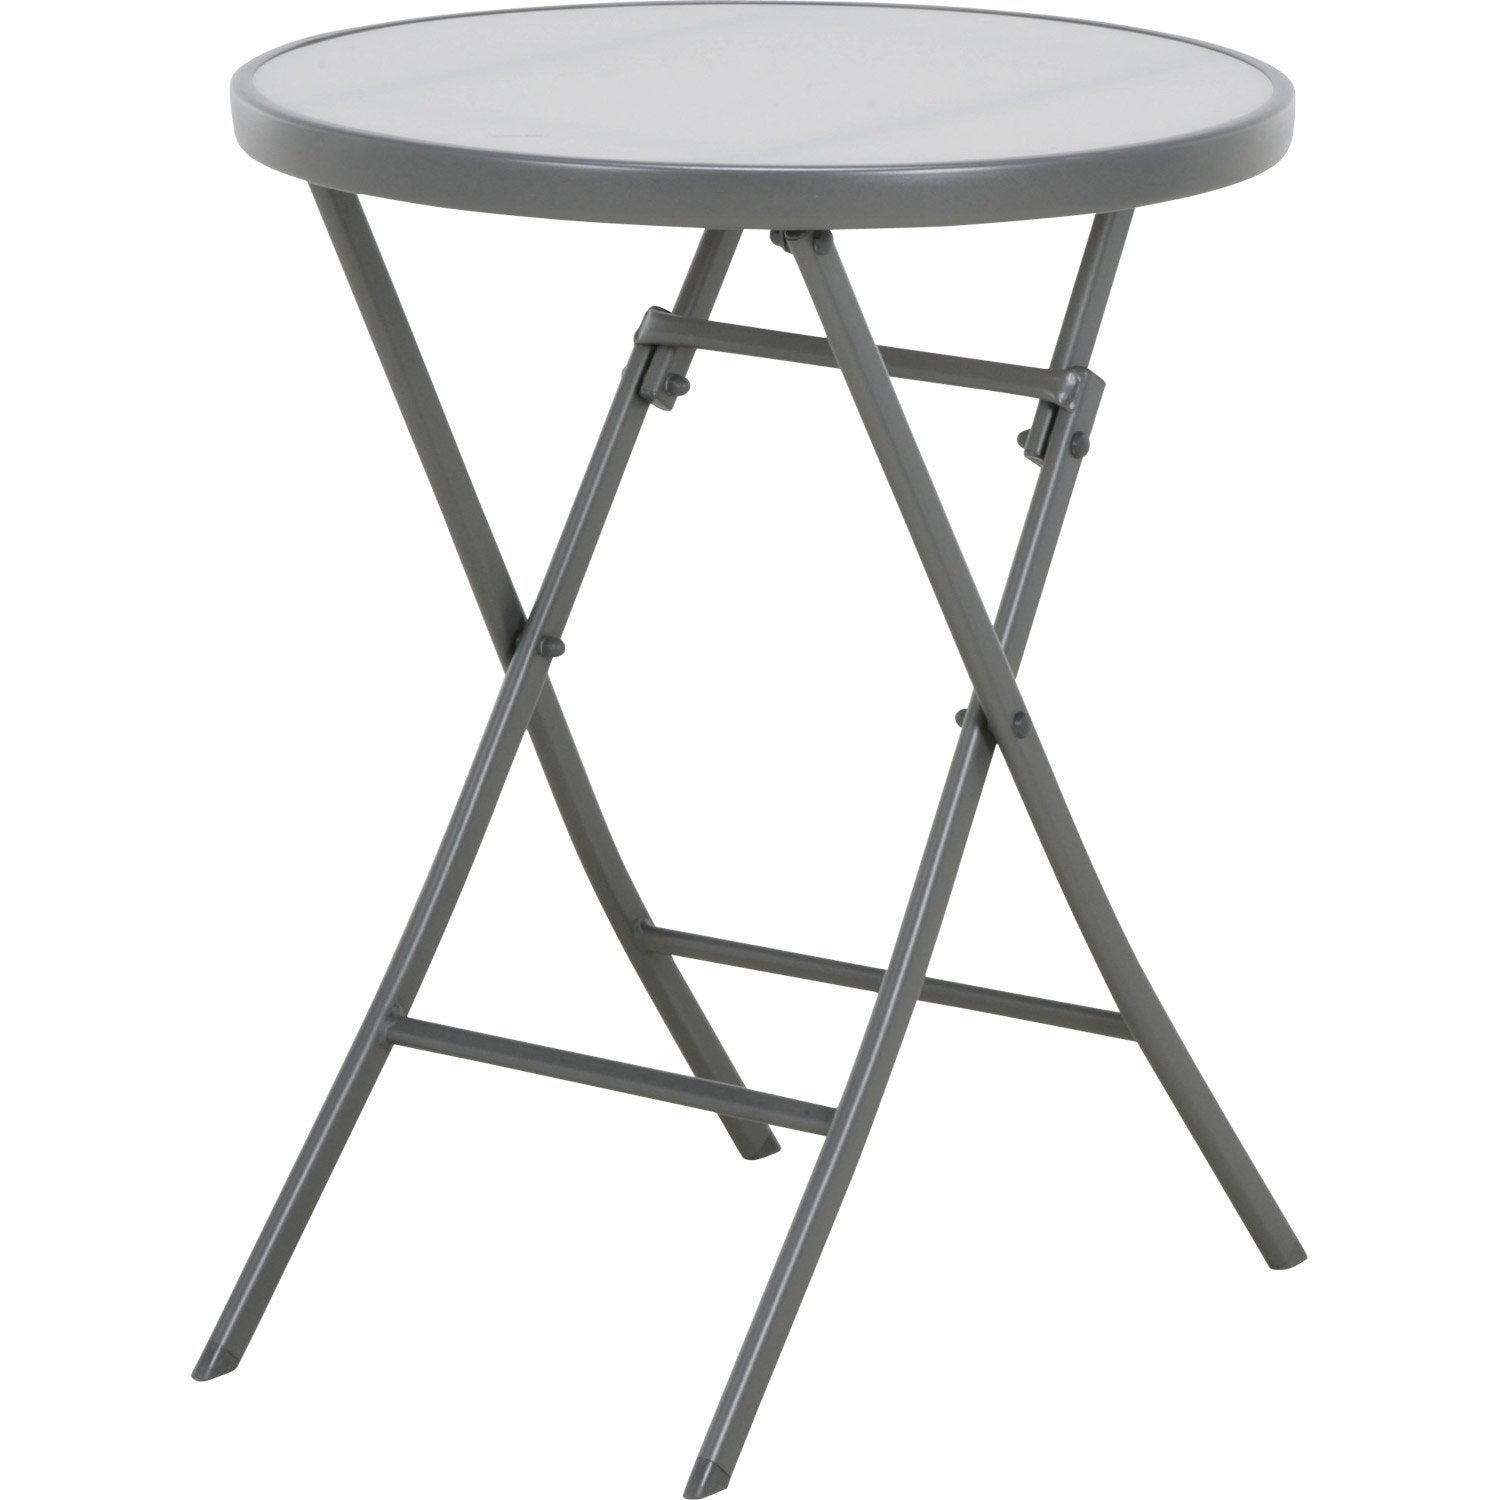 Table de brasserie pliante leroy merlin table de lit - Table brasserie pliante occasion ...